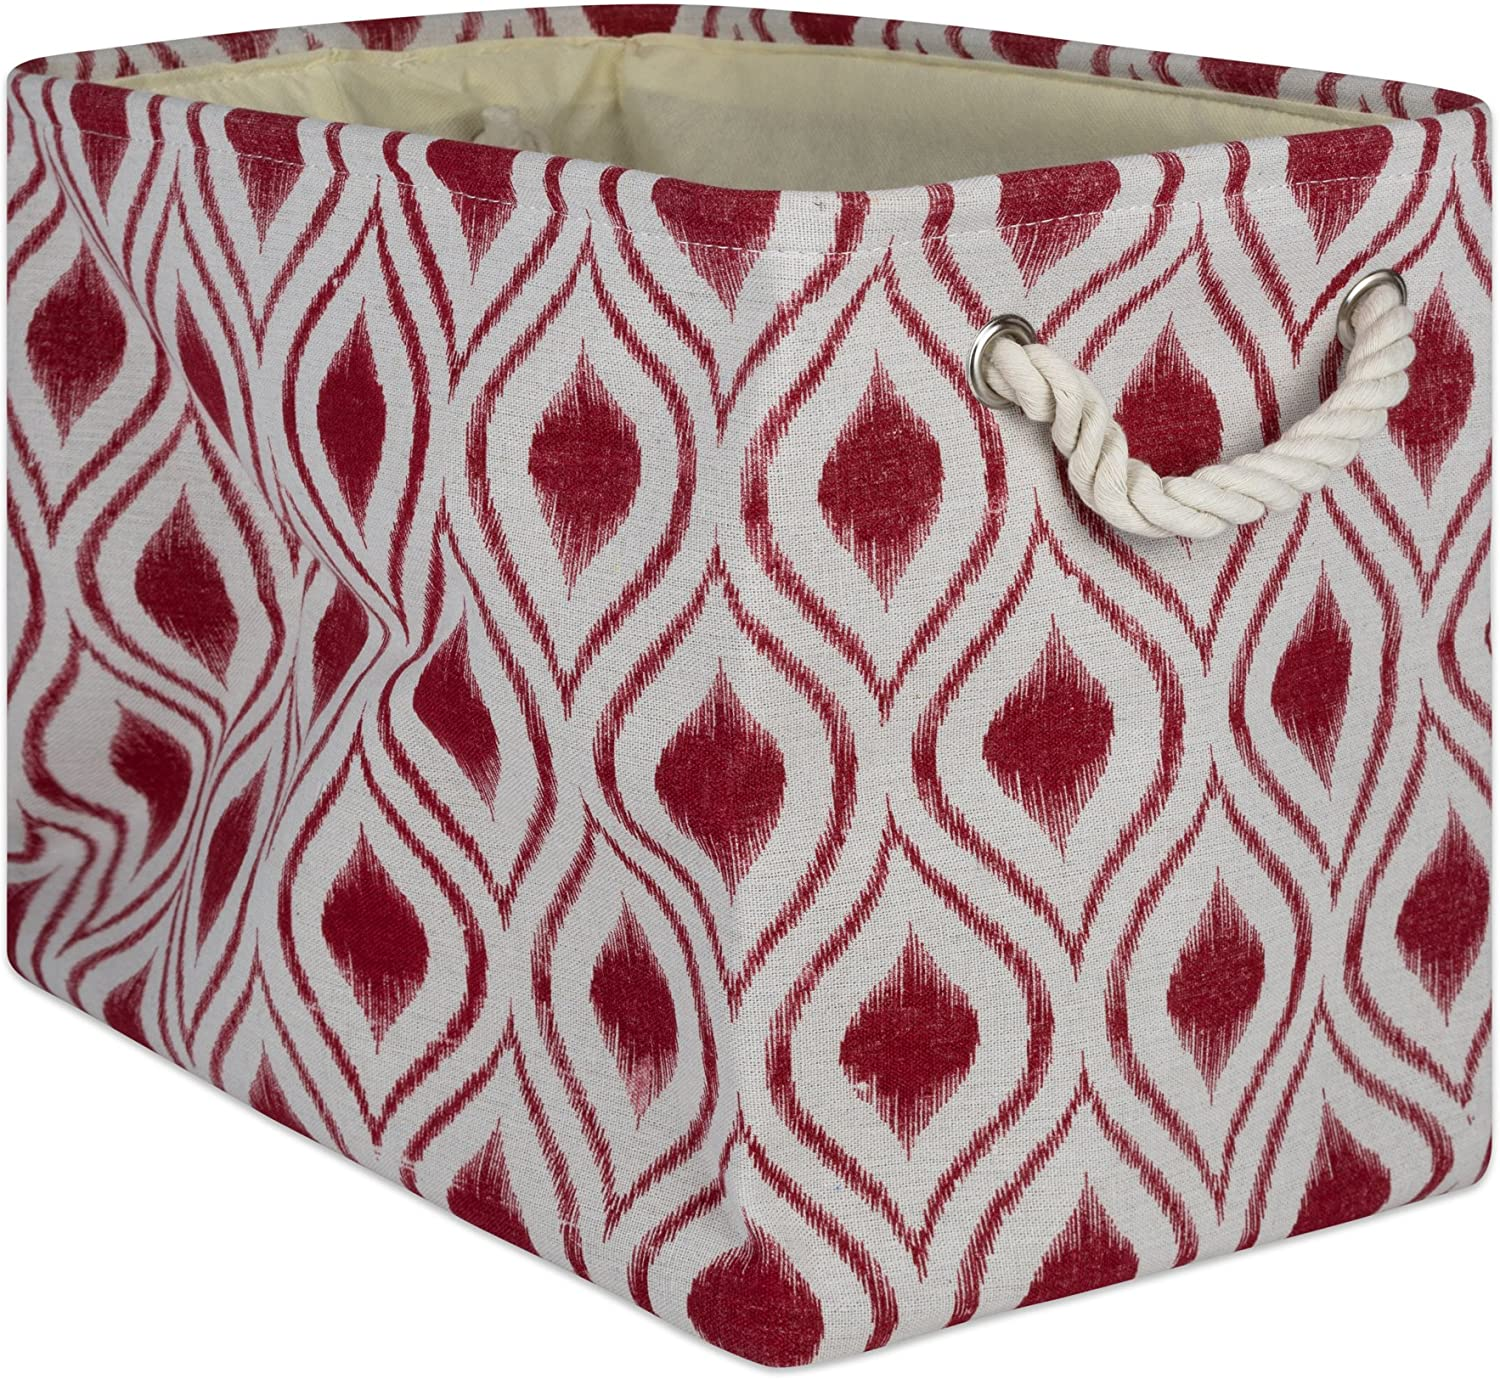 DII CAMZ10031 Collapsible Polyester Storage Basket or Bin with Durable Cotton Handles, Home Organizer Solution for Office, Bedroom, Closet, Toys, Laundry, Large, Barn Red